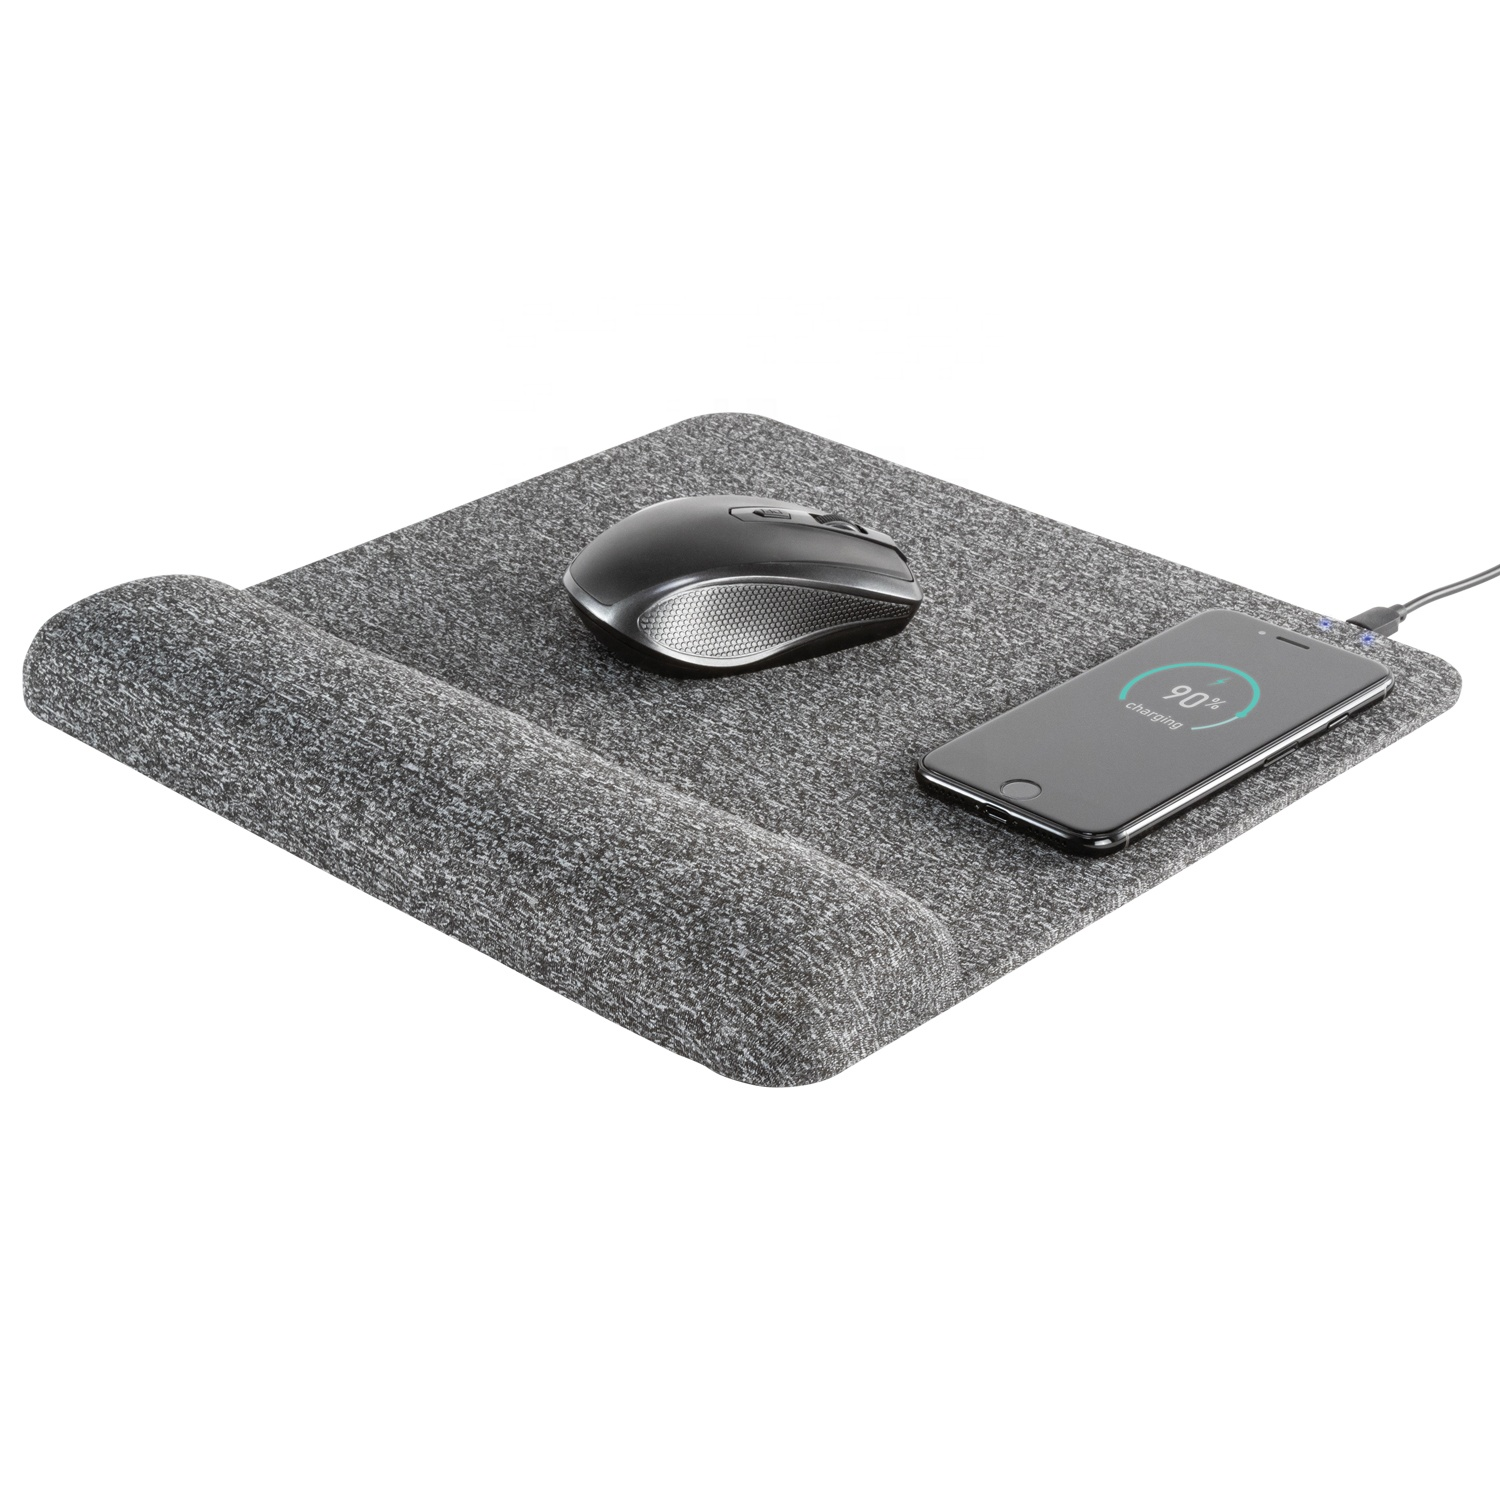 Musthong Fast Wireless Charging Mouse Pad with Wrist Rest Support Memory Foam and Non-Slip Base for Computer Laptop Office Home